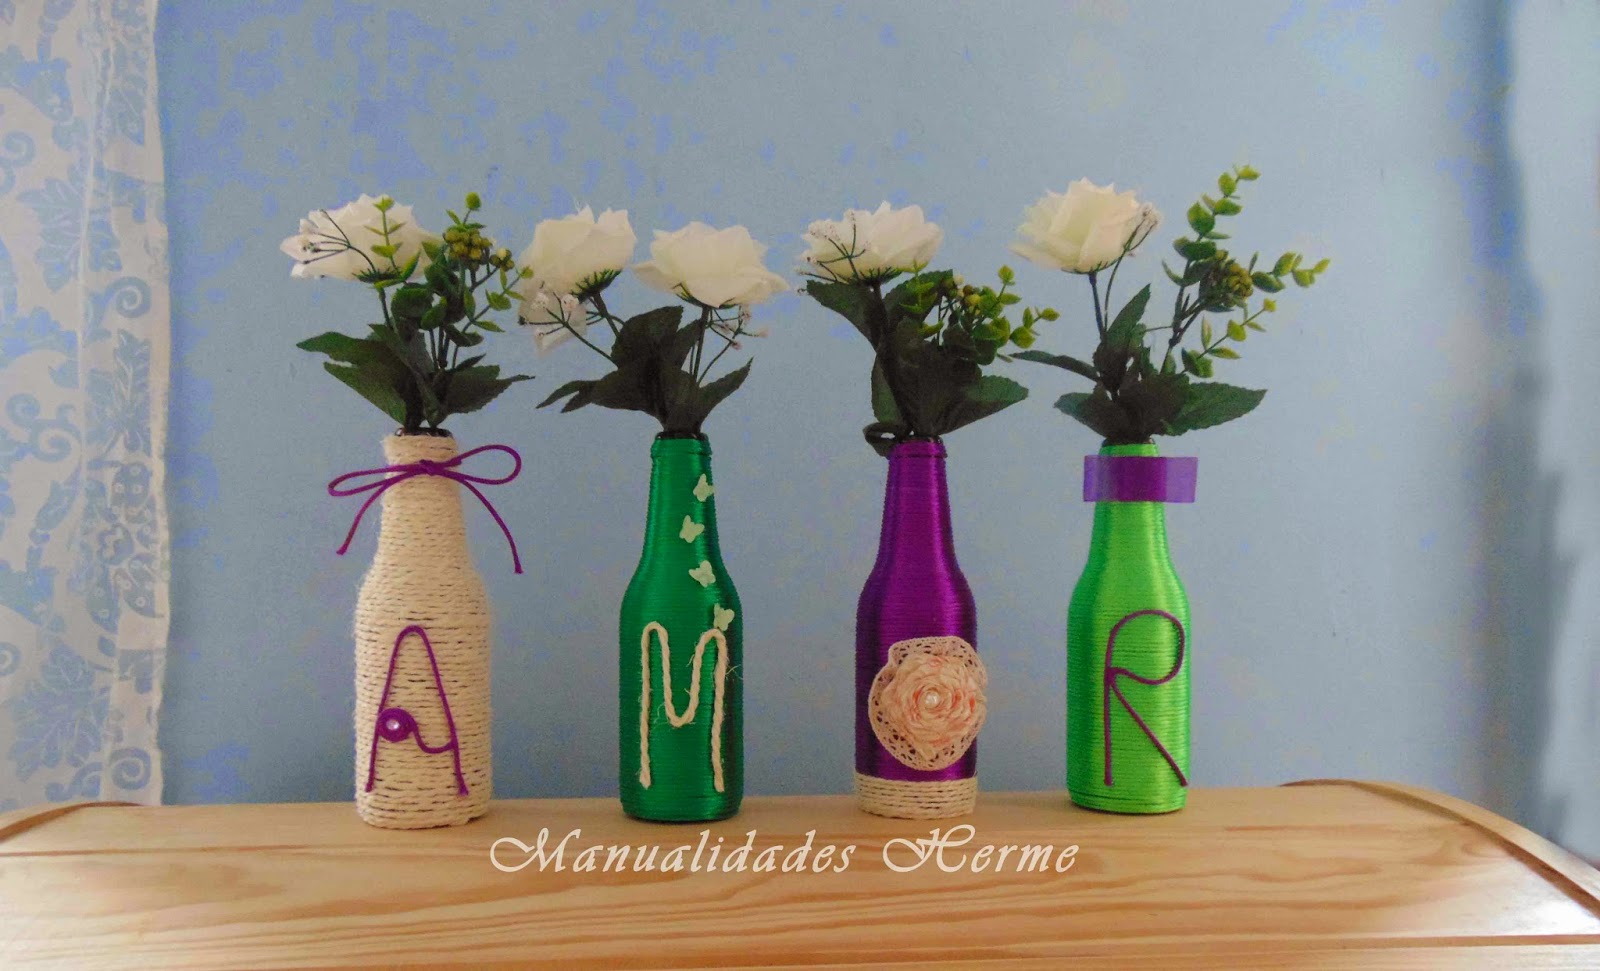 Manualidades herme diy decorar botellas de vidrio - Como decorar botellas de vidrio ...